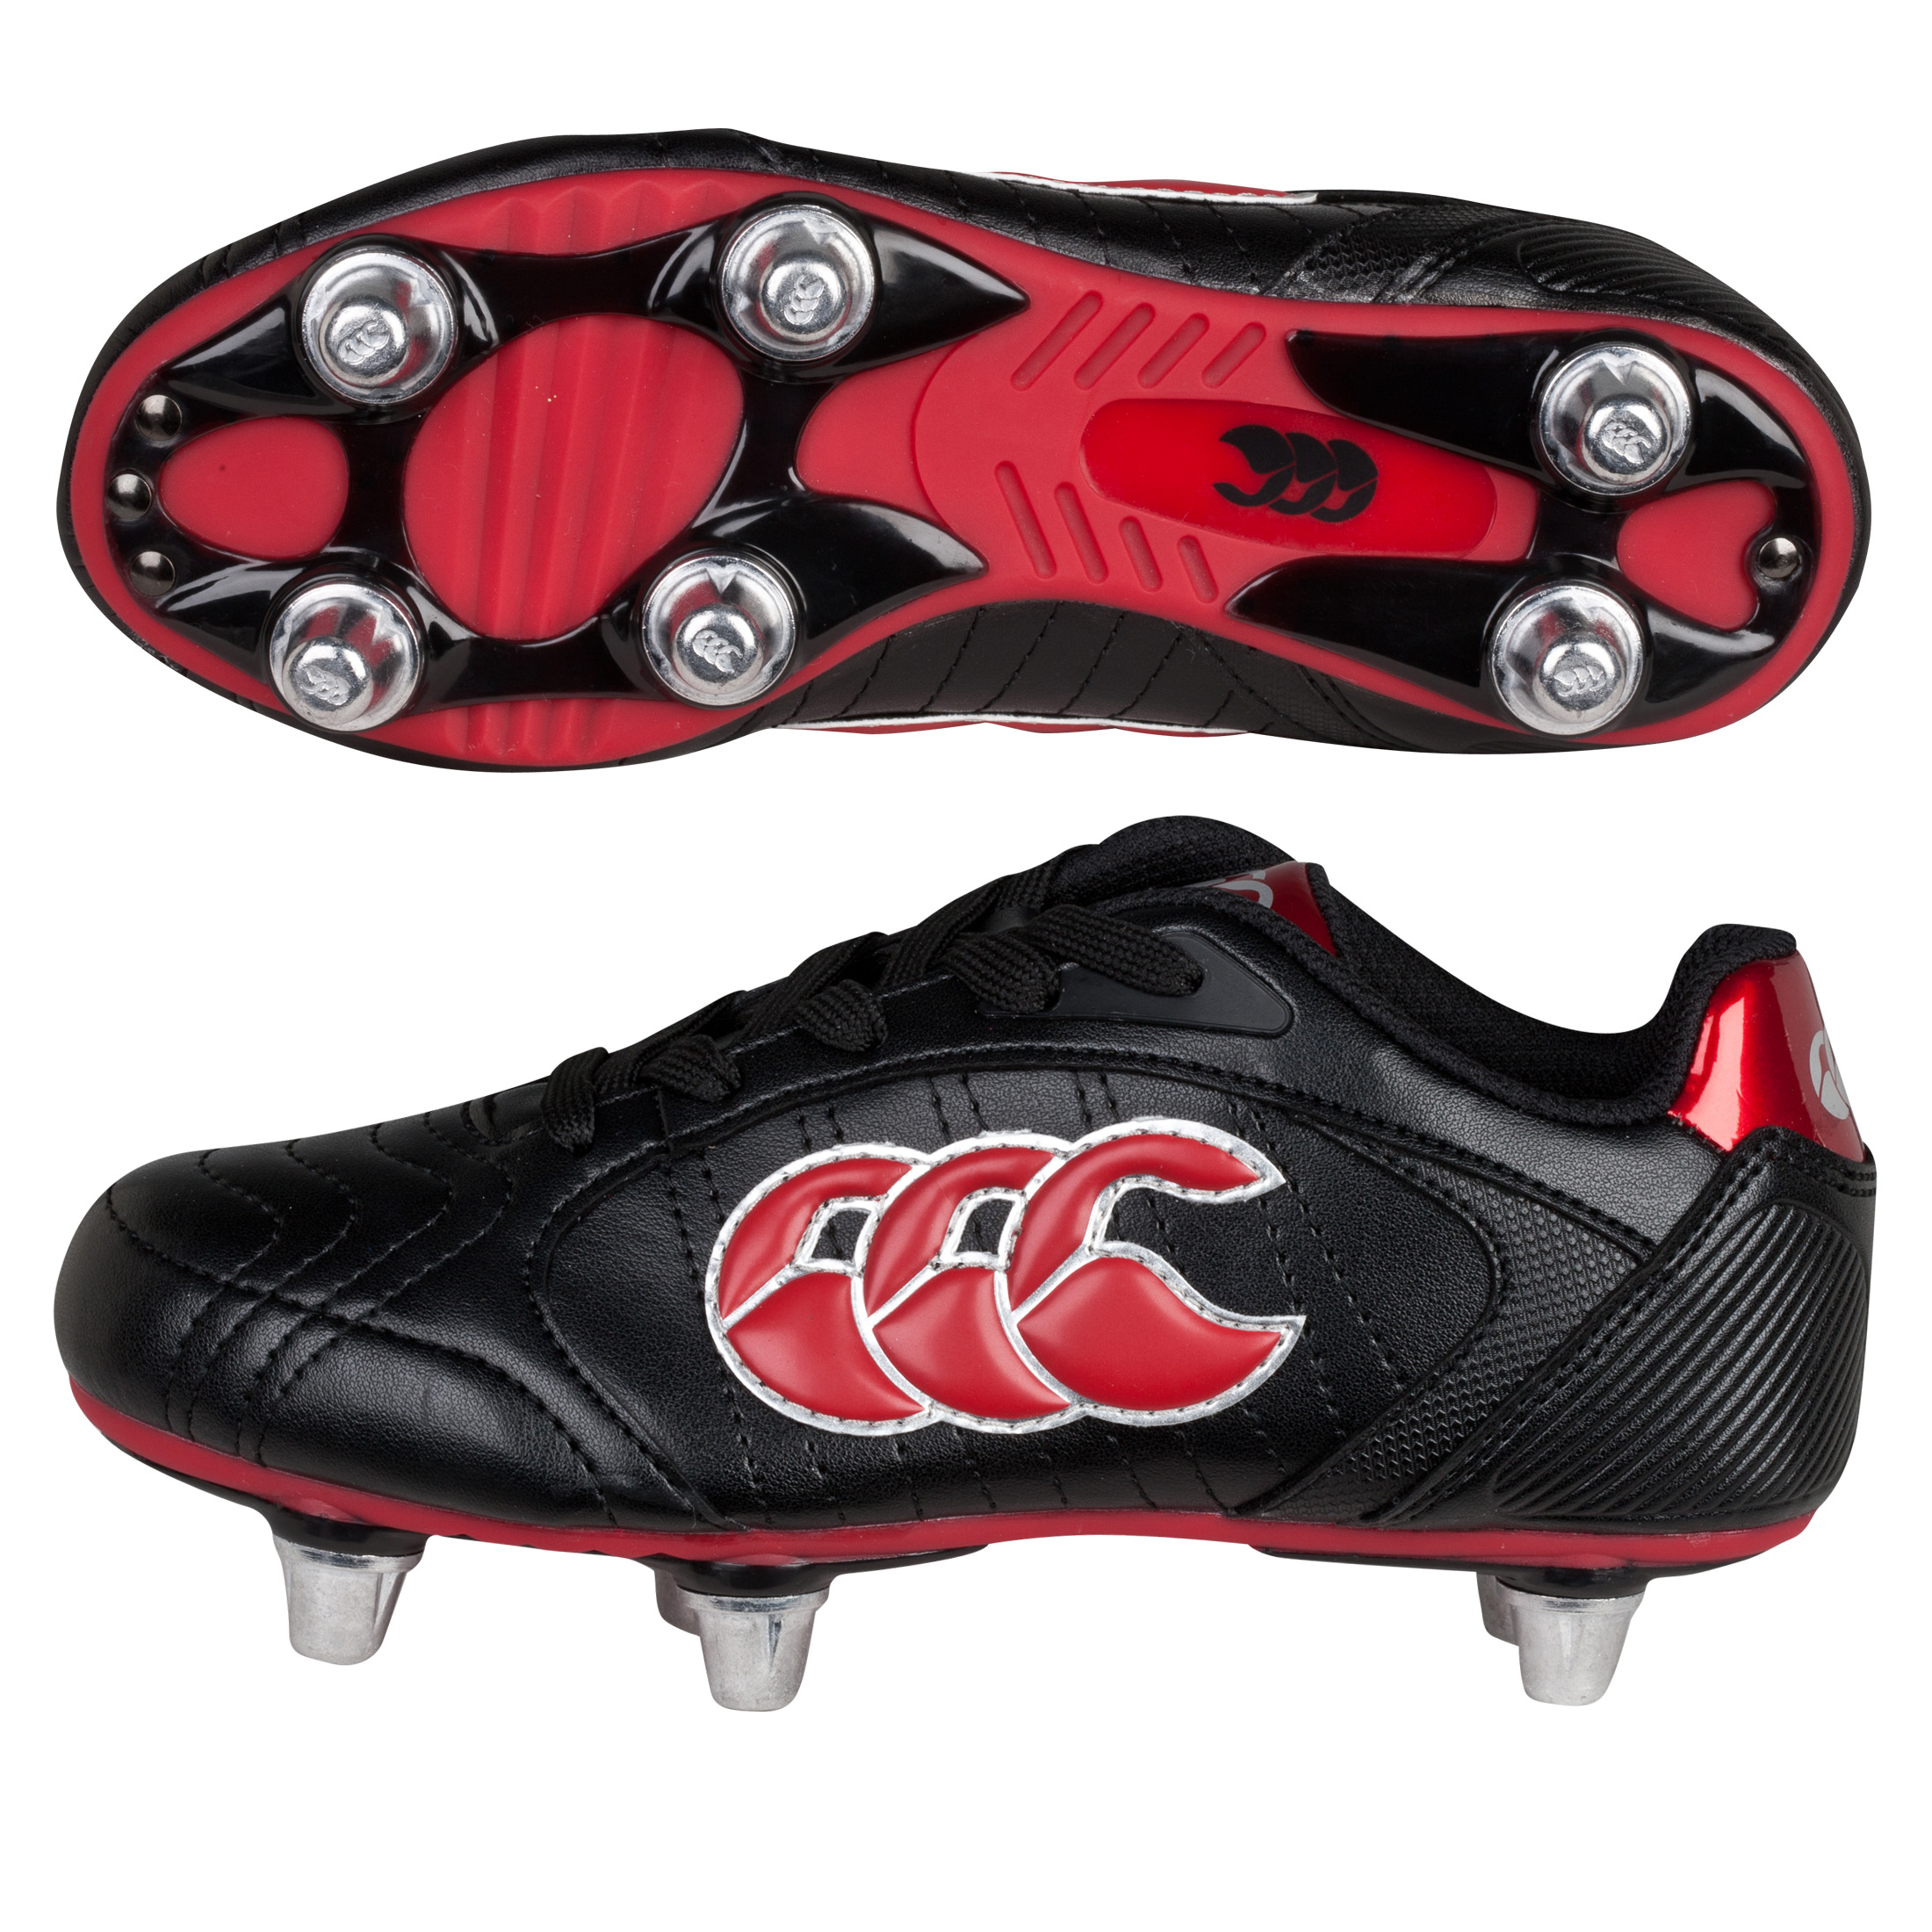 Canterbury Phoenix III Club 6 Stud Rugby Boots - Black/Red/Silver - Kids